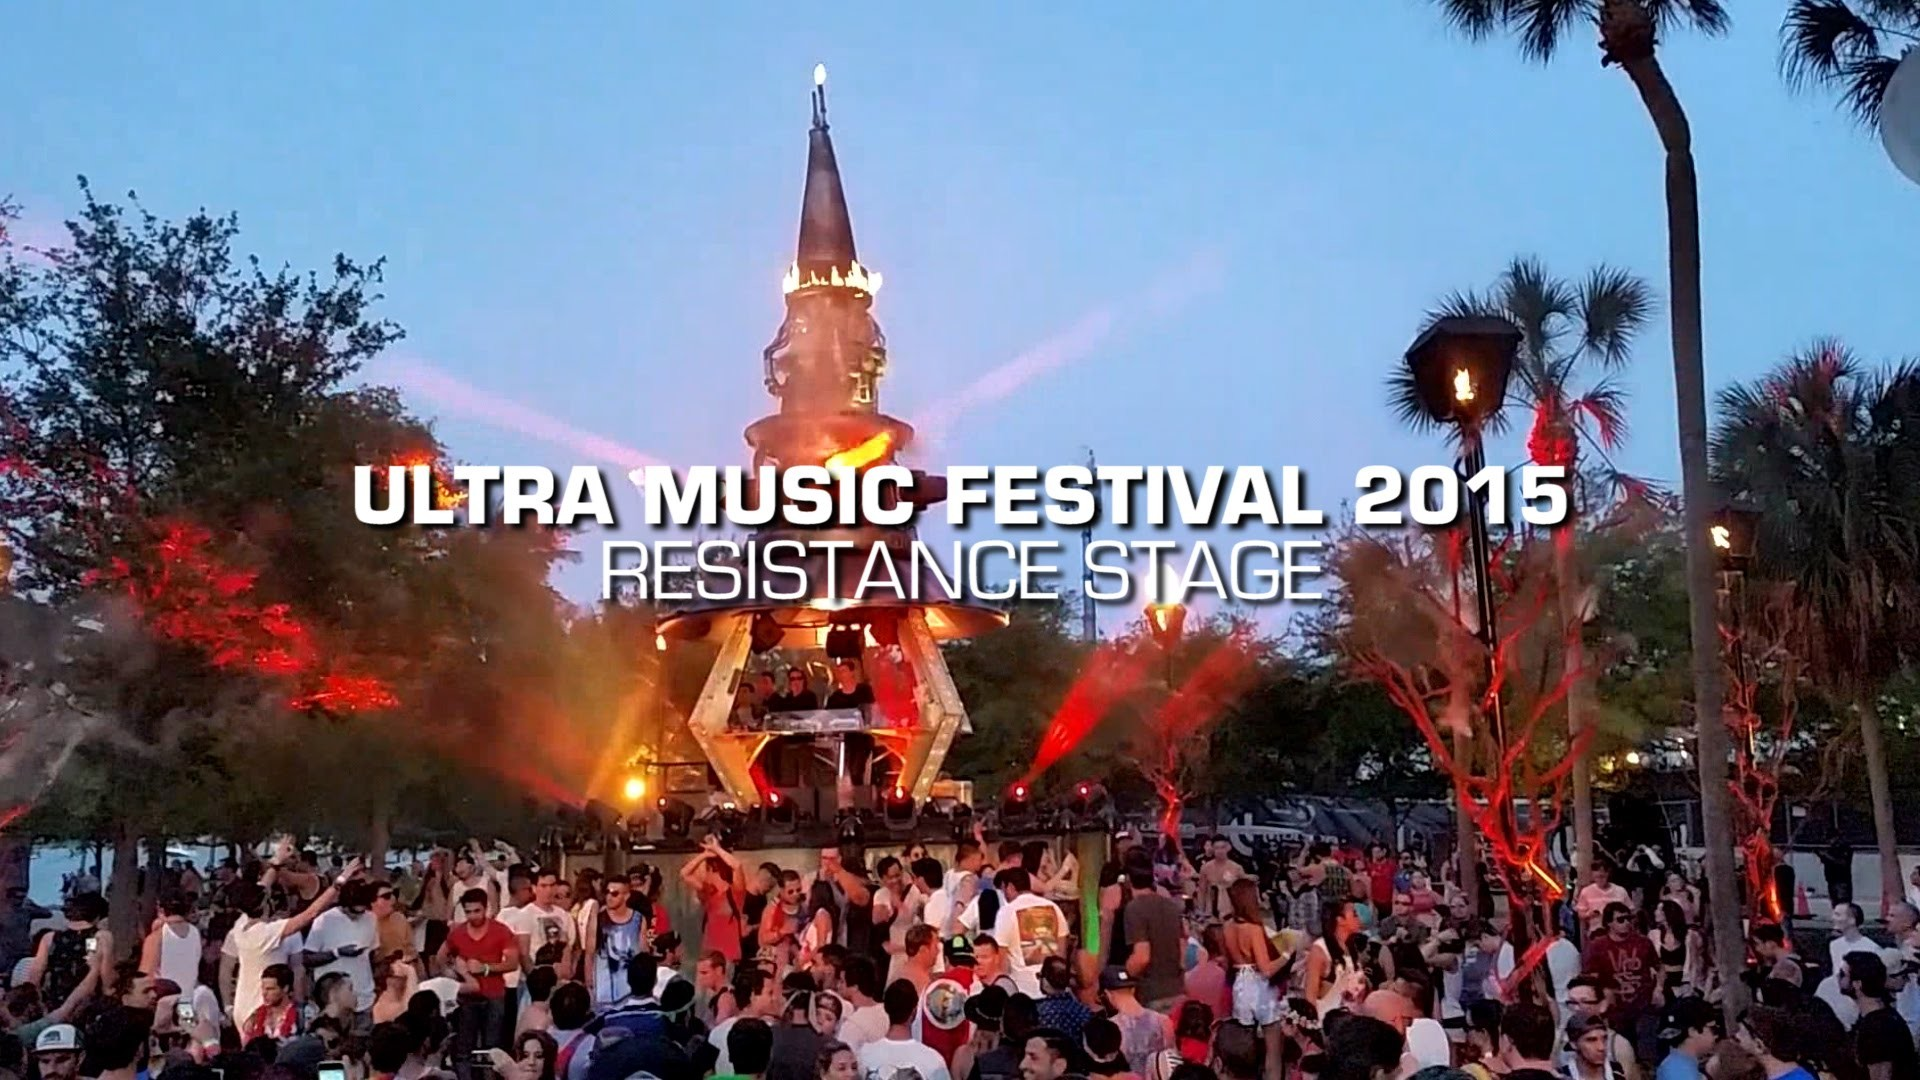 1920x1080 2015 Ultra Music Festival - Resistance Stage by Arcadia Spectacular -  YouTube